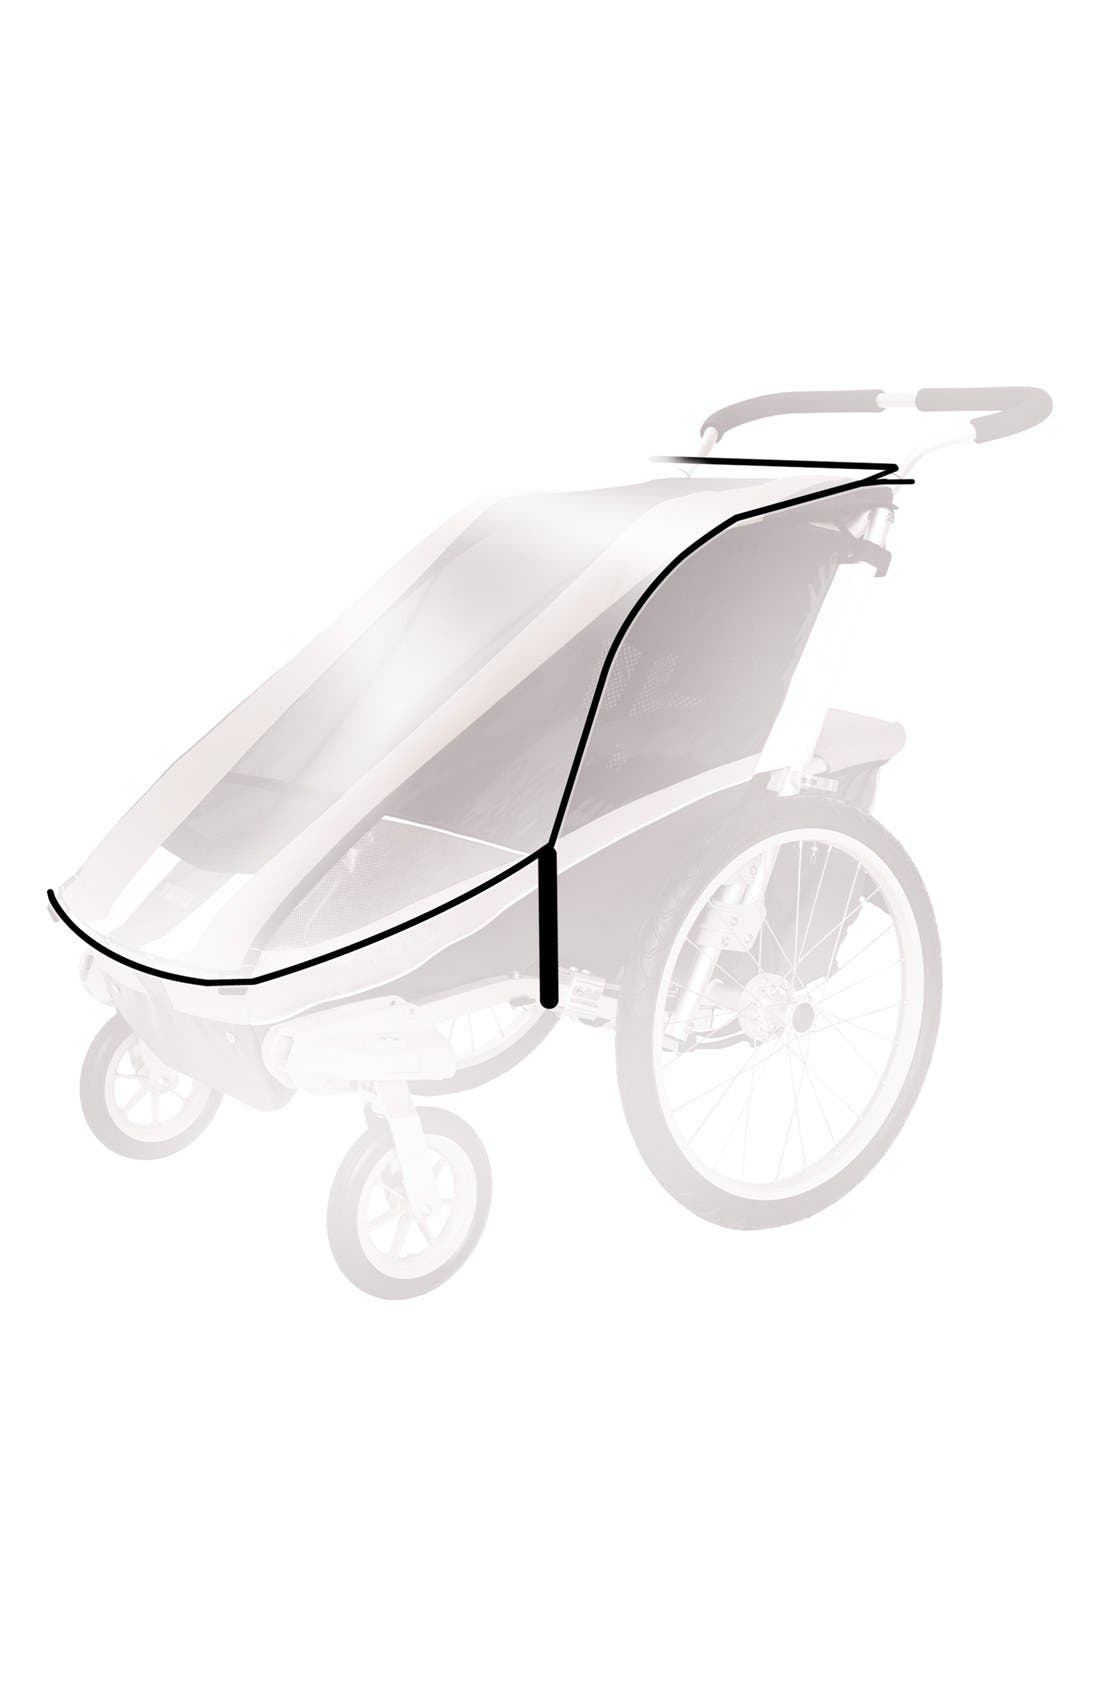 Protective Rain Cover for Thule Chariot CX 2/Chariot Cougar 2 Strollers,                             Main thumbnail 1, color,                             001